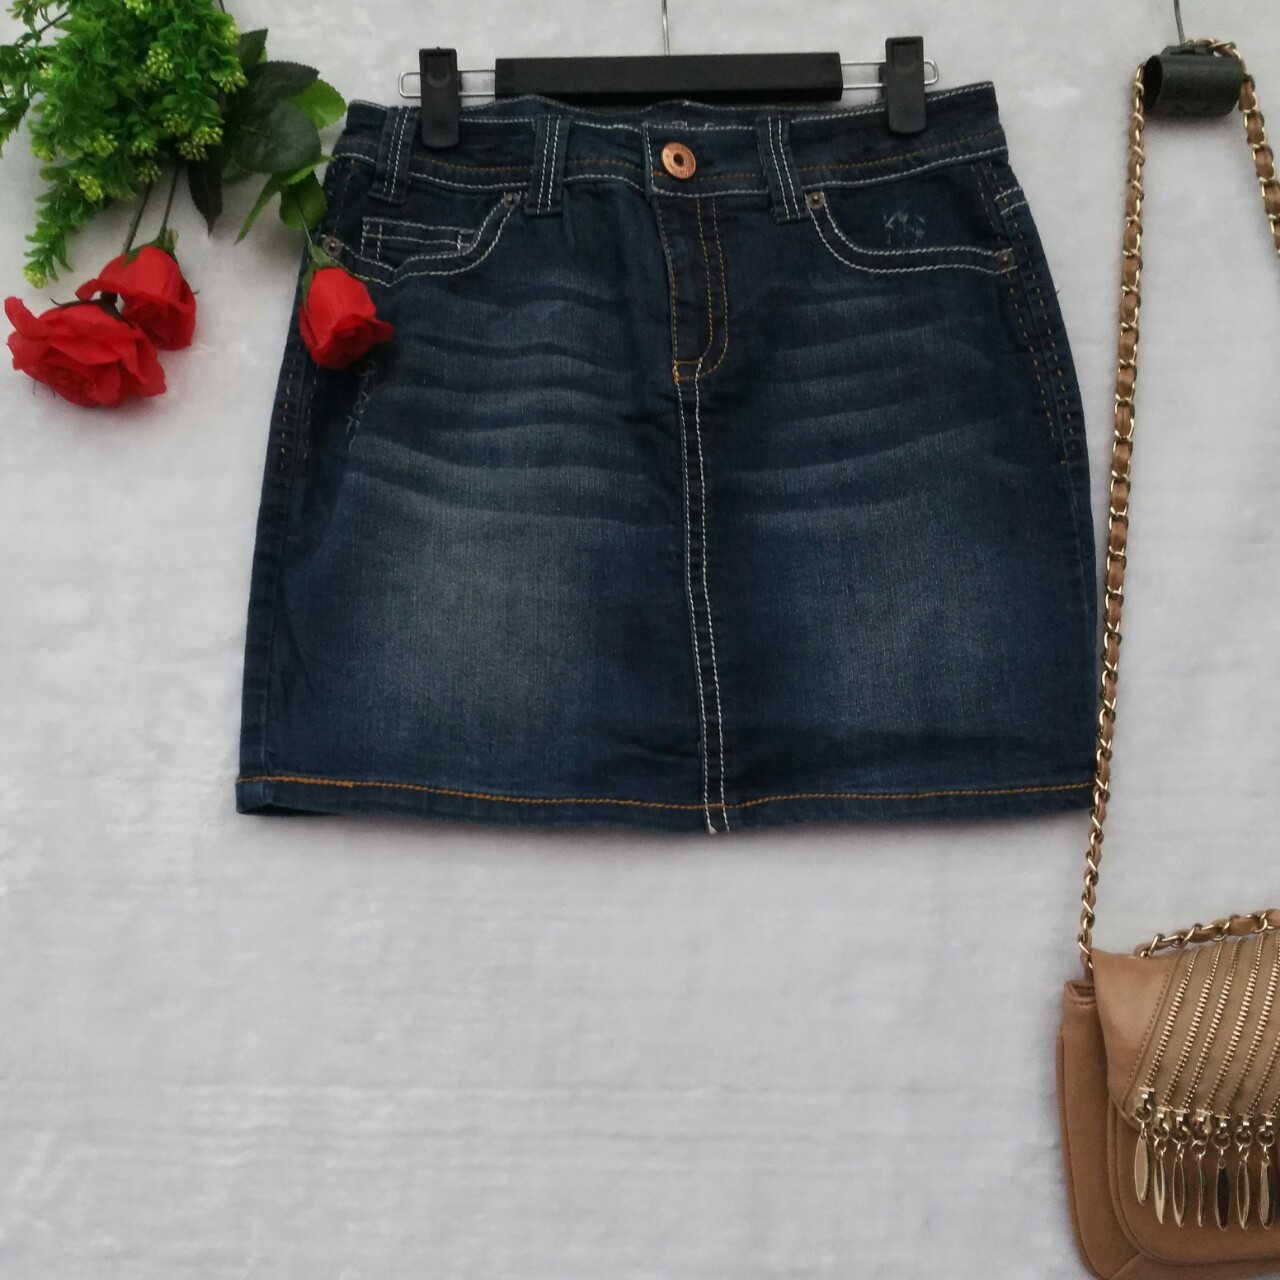 Origional WOMEN'S Dress Large Size Casual City Trend Pretty Girl Casual No Good Ultra-stretch Embossed Denim Skirt